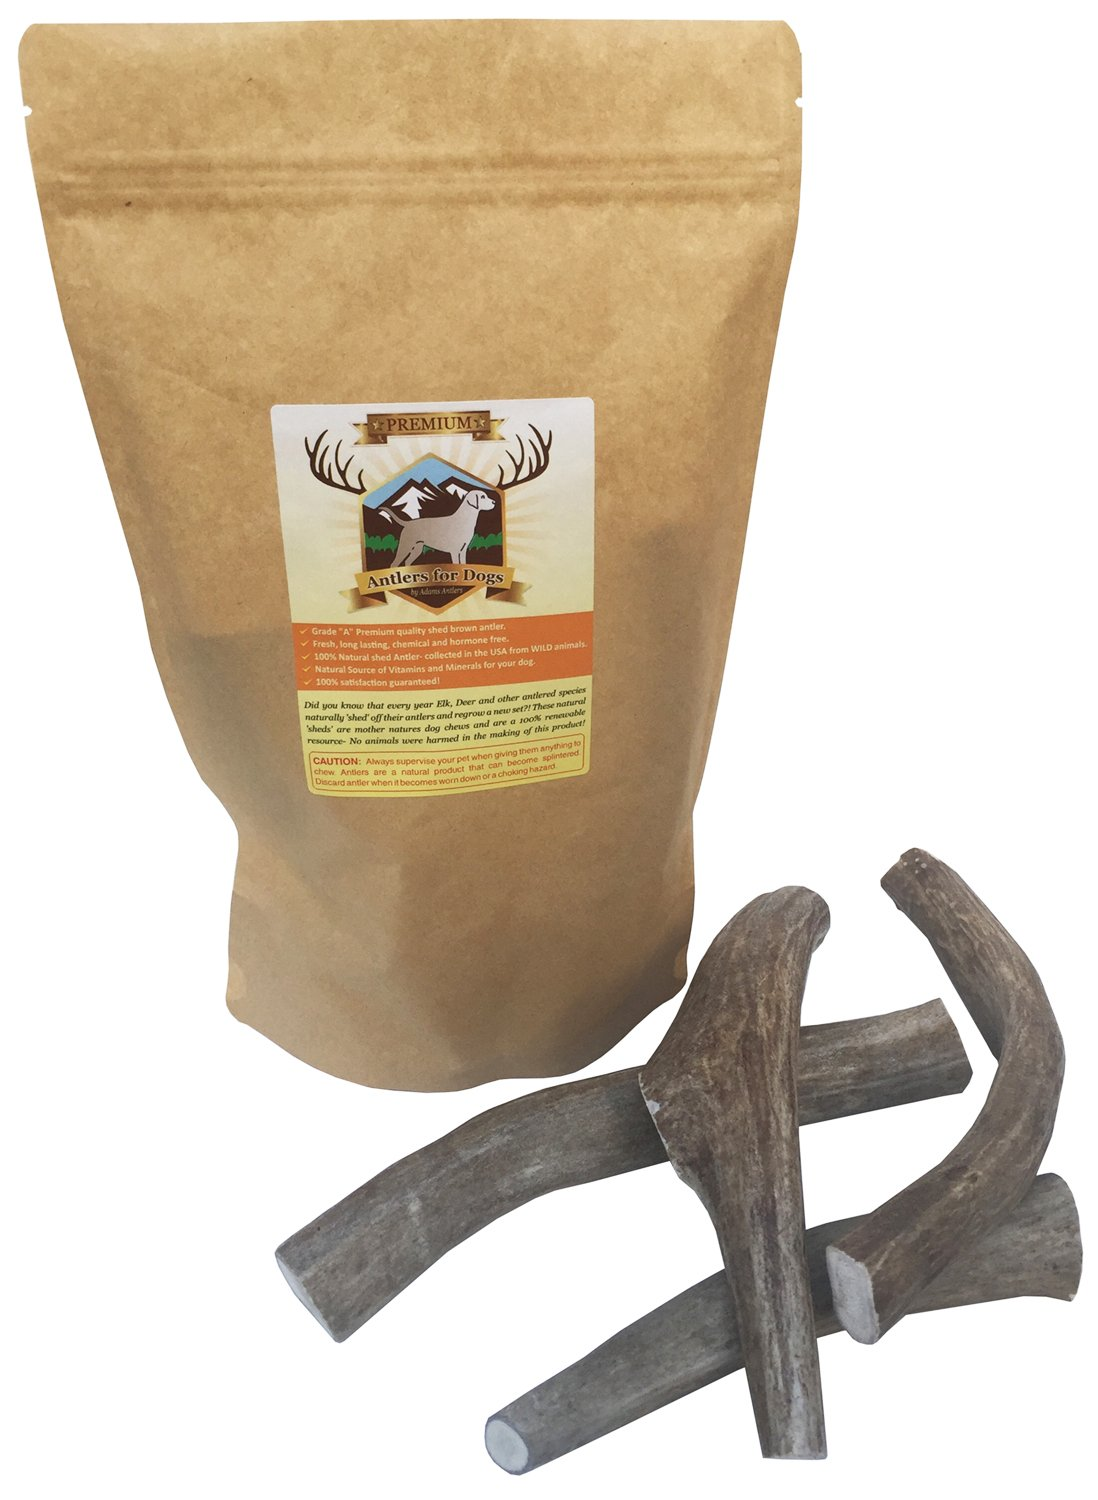 Deer Antlers for Dogs Premium 4 pack Deer antler bone chews. Guaranteed to contain 4 fresh brown antler chews for dogs.